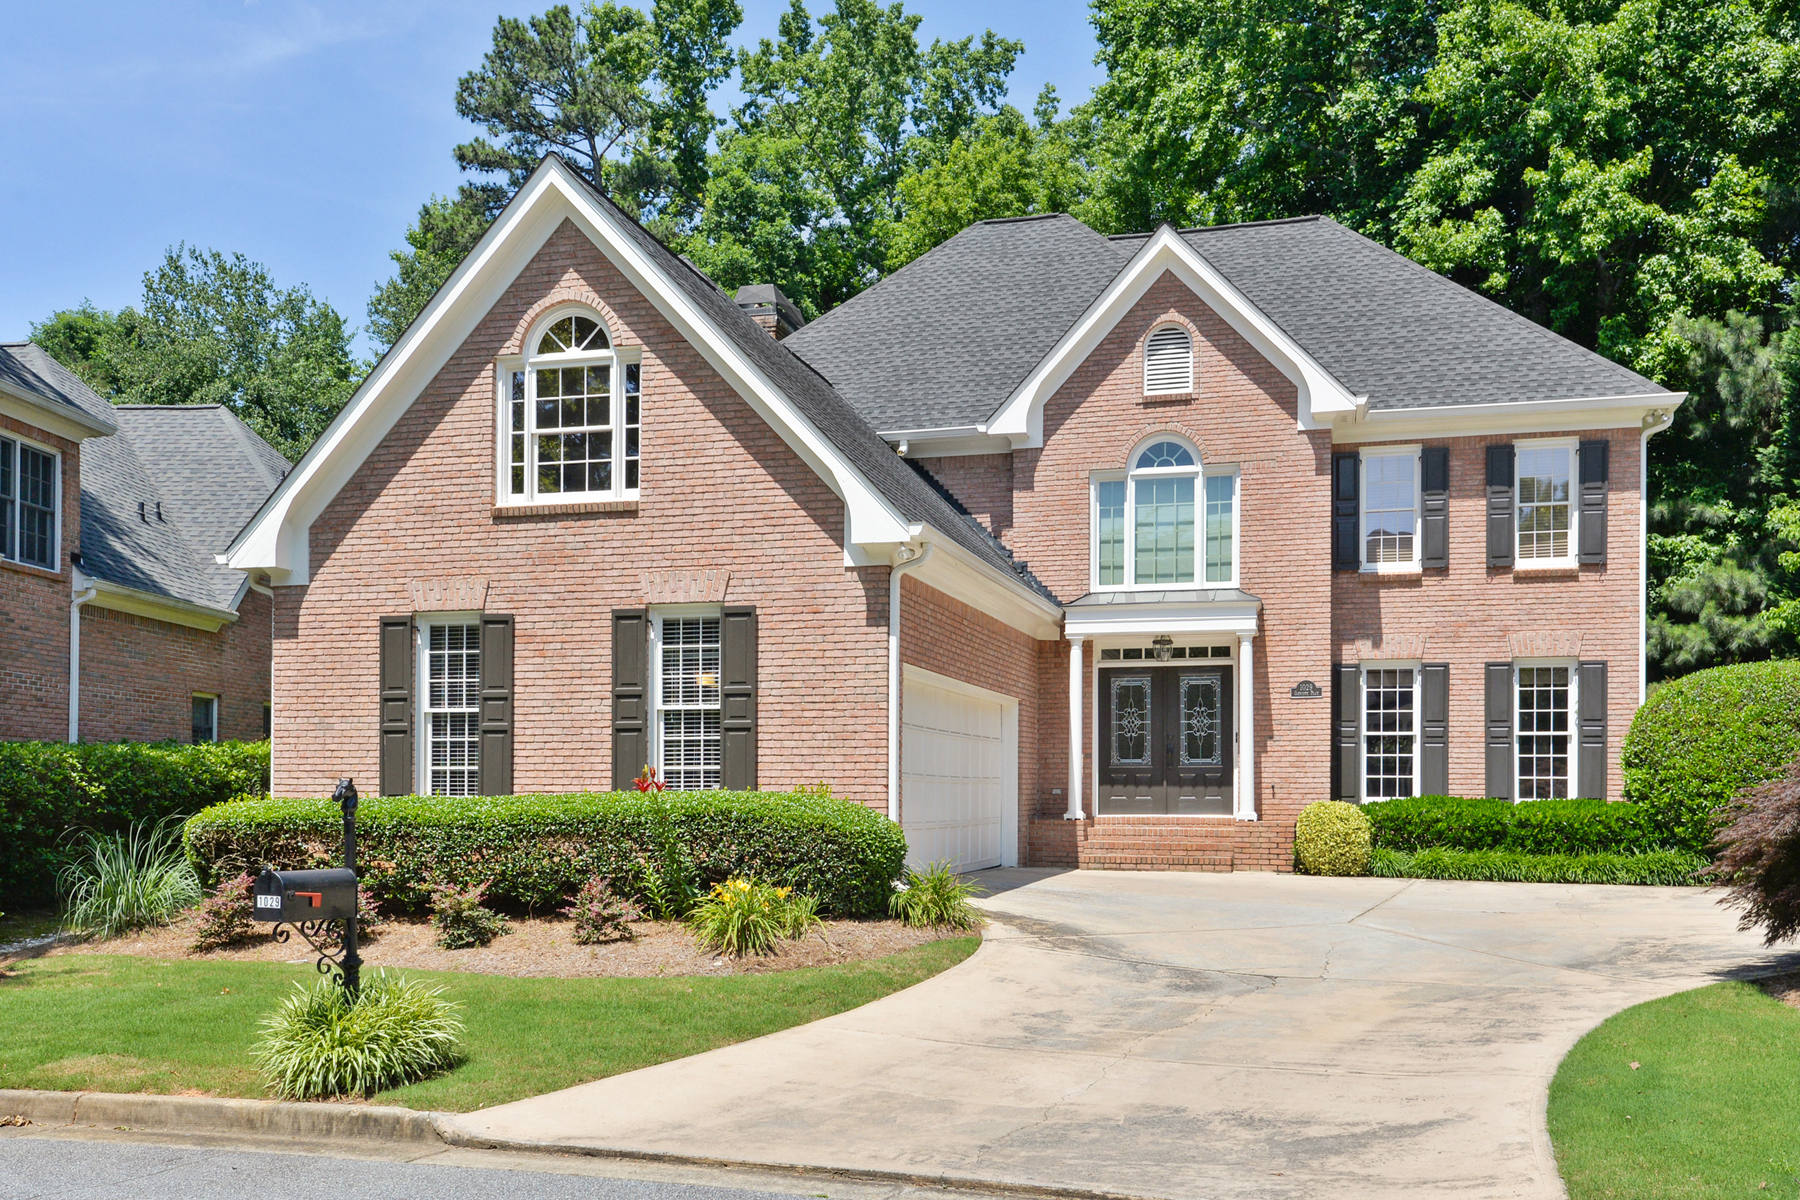 Single Family Home for Sale at Darling Dunwoody Property 1029 Oakpointe Place Dunwoody, Georgia 30338 United States